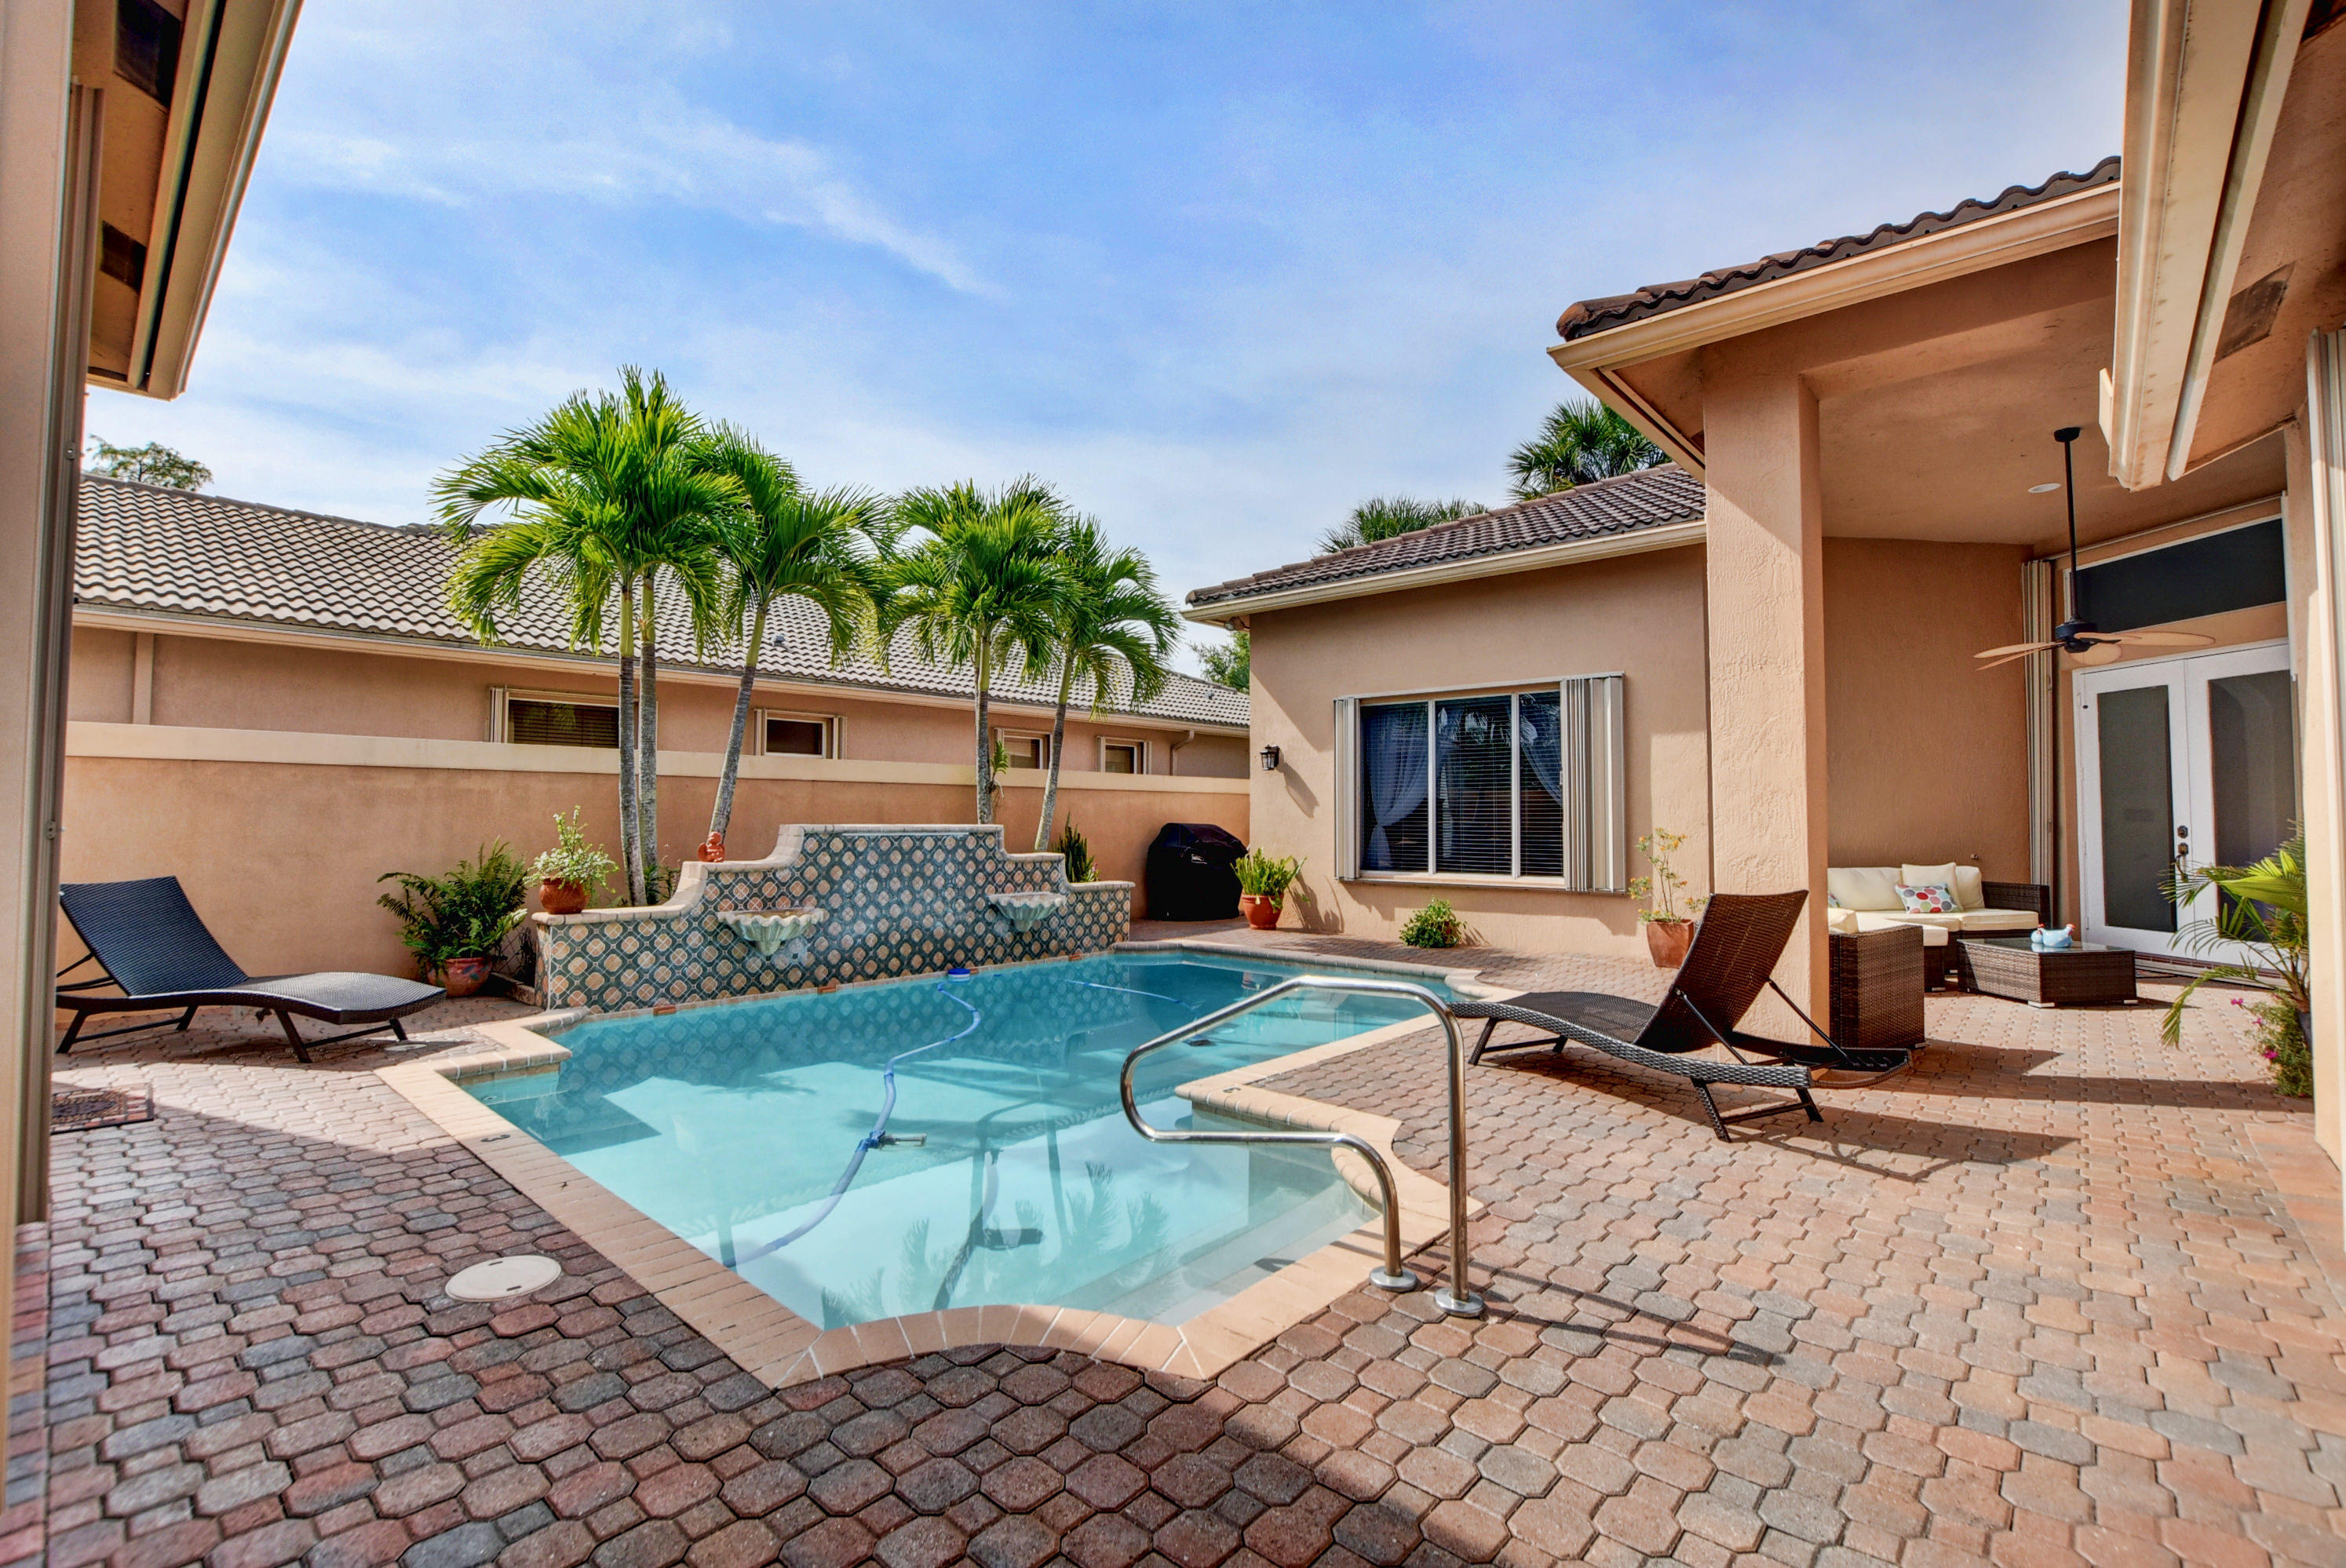 1803 Waldorf Dr Drive - 33411 - FL - Royal Palm Beach